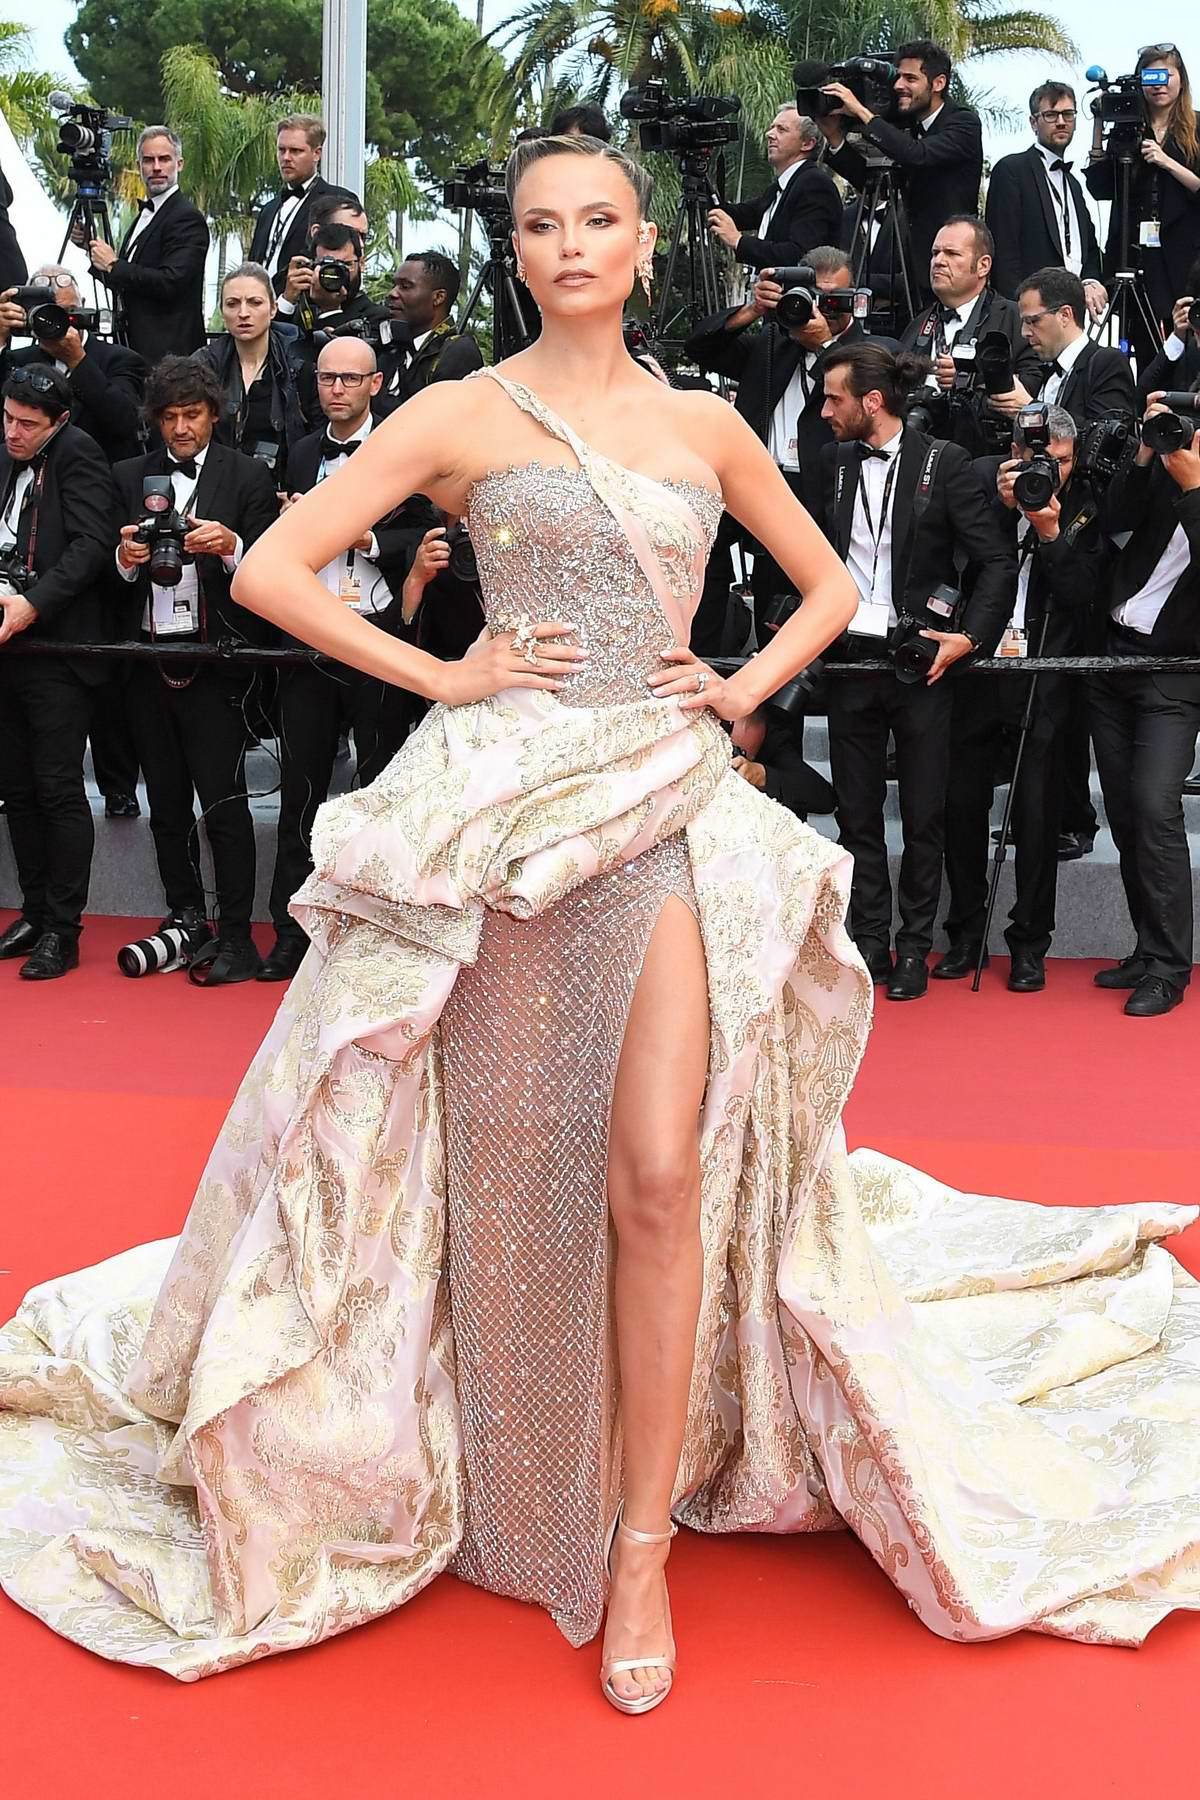 Natasha Poly attends the screening of 'Oh Mercy! during the 72nd annual Cannes Film Festival in Cannes, France